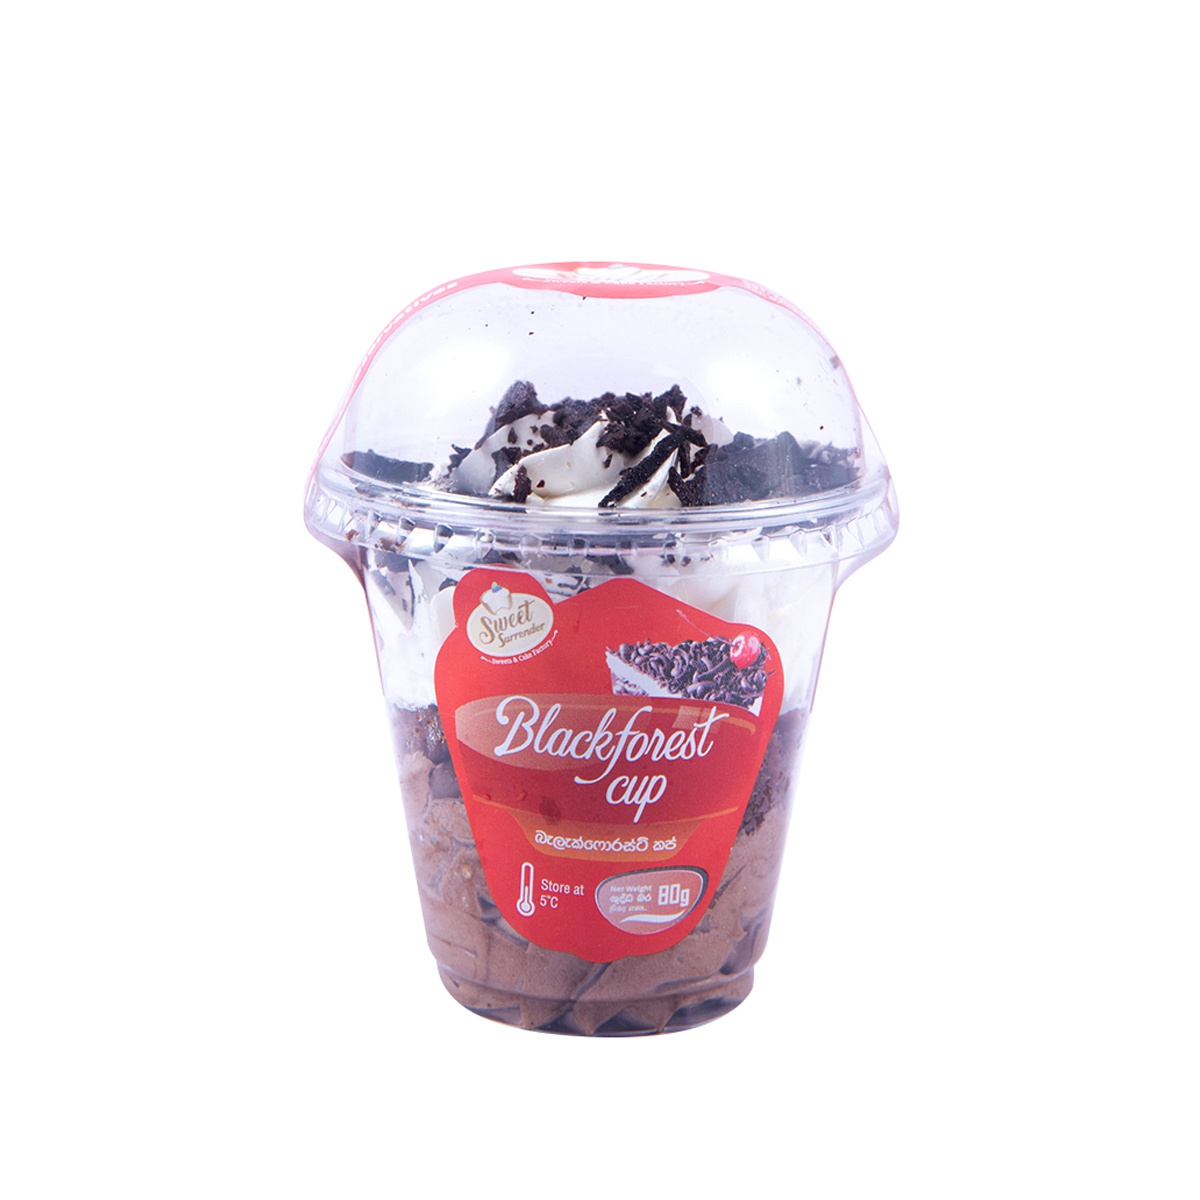 Sweet Surrender Dessert Black Forest Cup 90g - in Sri Lanka